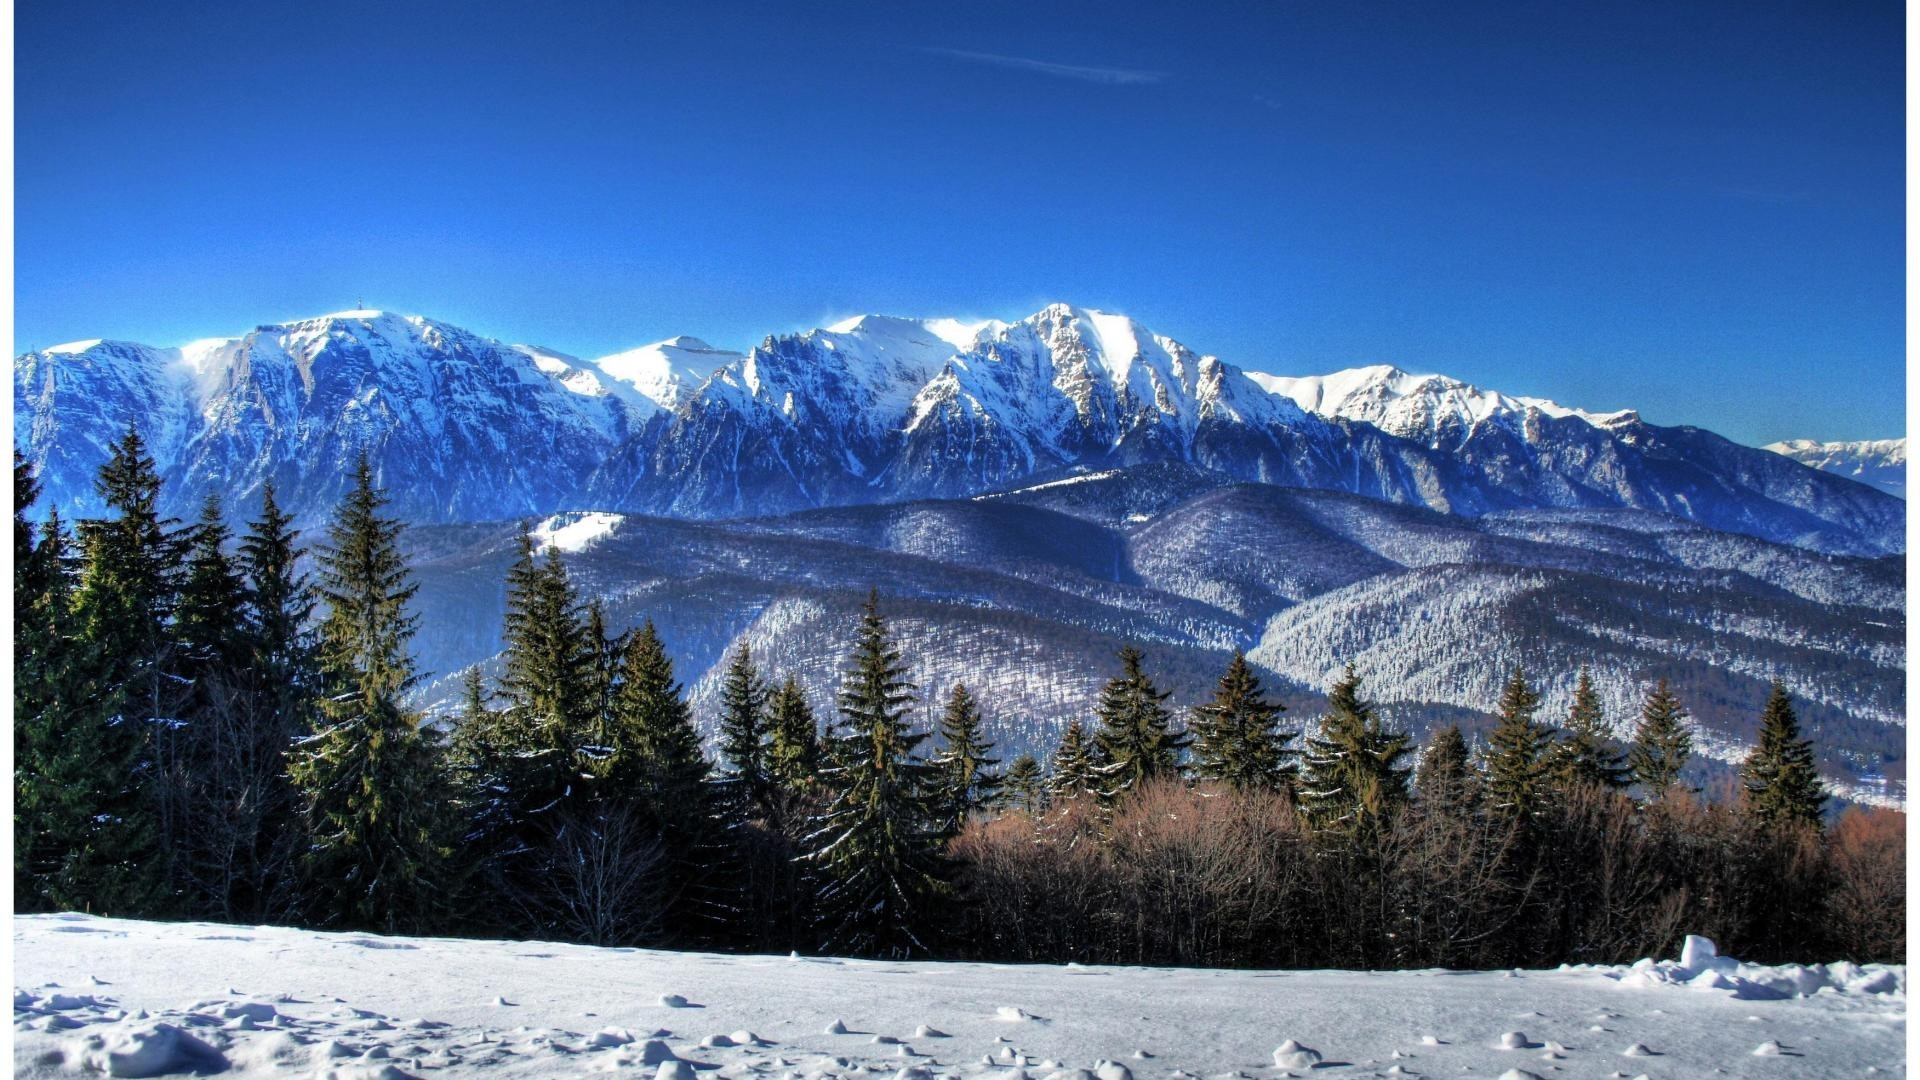 Winter Tag – Mountains Winter Scene Cold Sky Beautiful Mountain Forests Snow  Desktop Wallpaper for HD